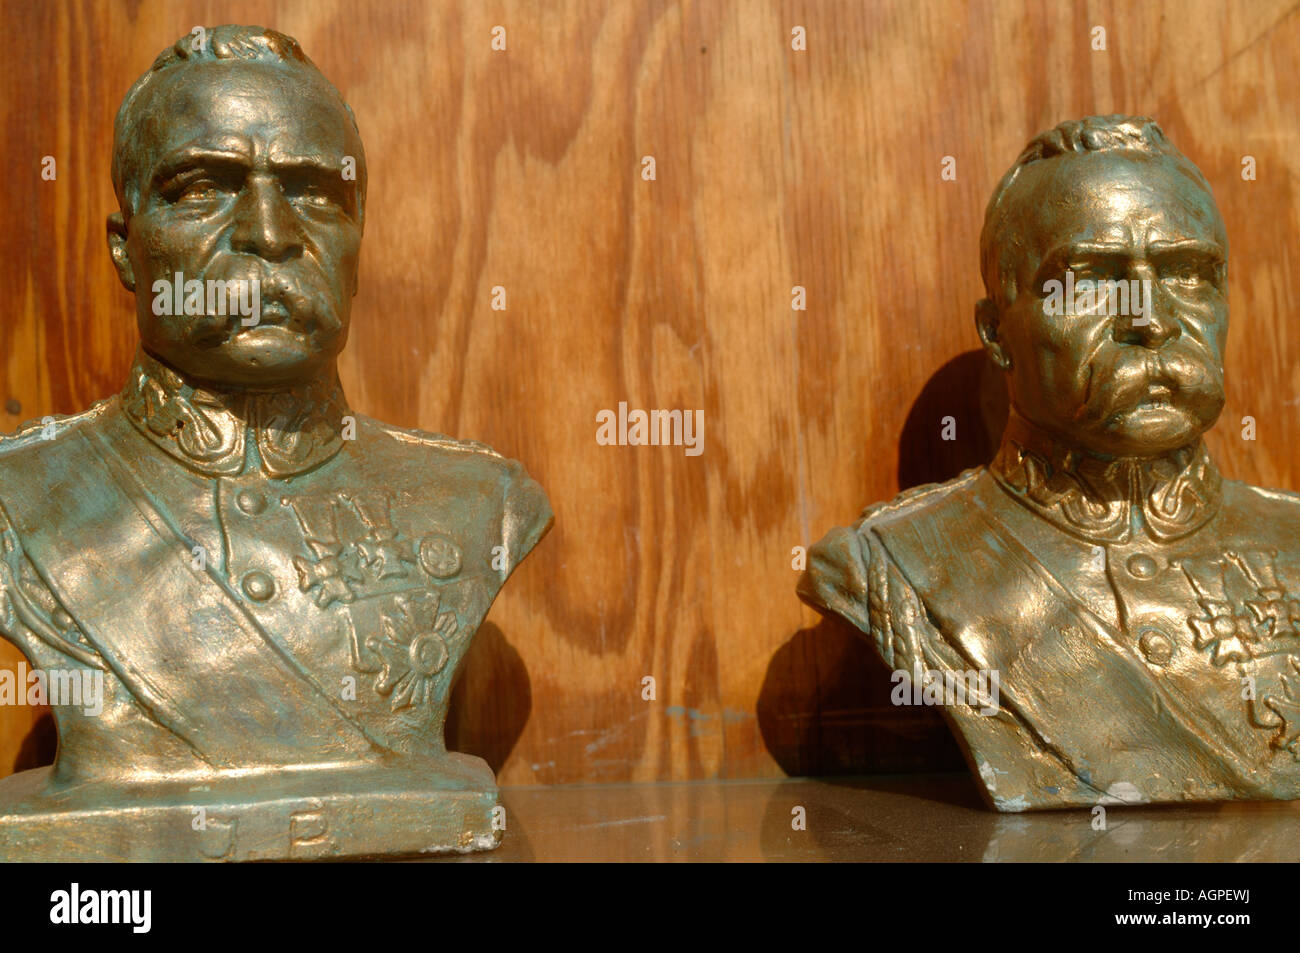 Miniature busts of the Polish general and politician Pilsudski in a